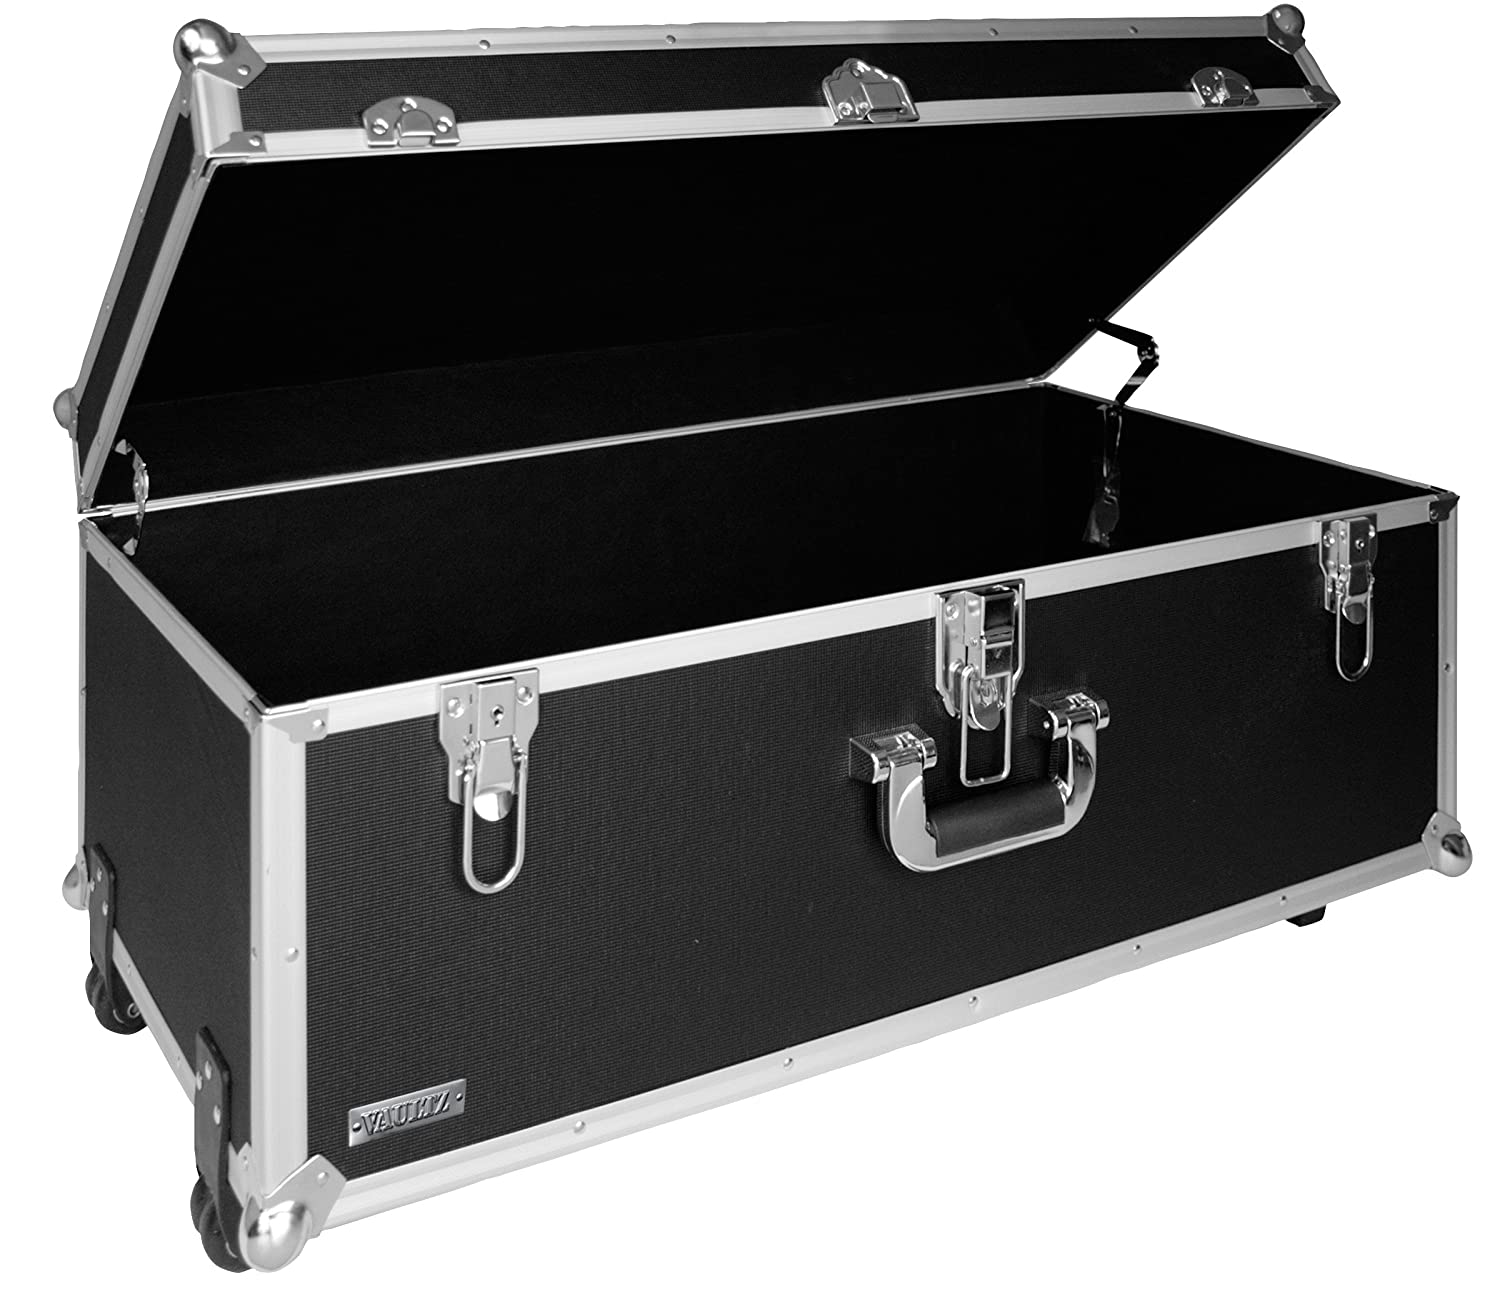 Attirant Amazon.com : Vaultz 14 X 30 X 16 Inches Locking Extra Large Storage Chest  With Wheels, Black (VZ00355) : Office Products